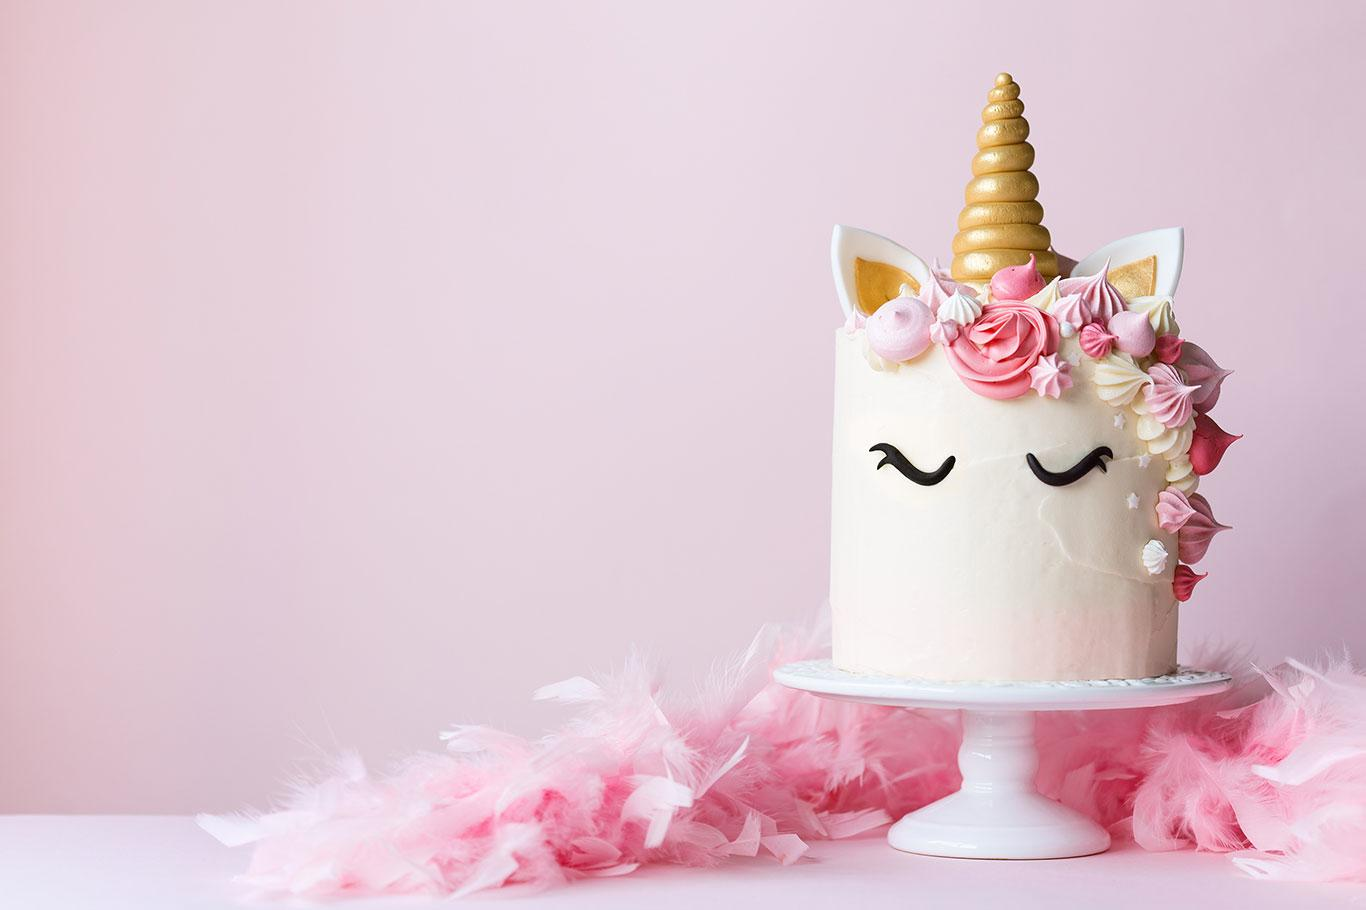 unicorn-cake-with-pink-frosting